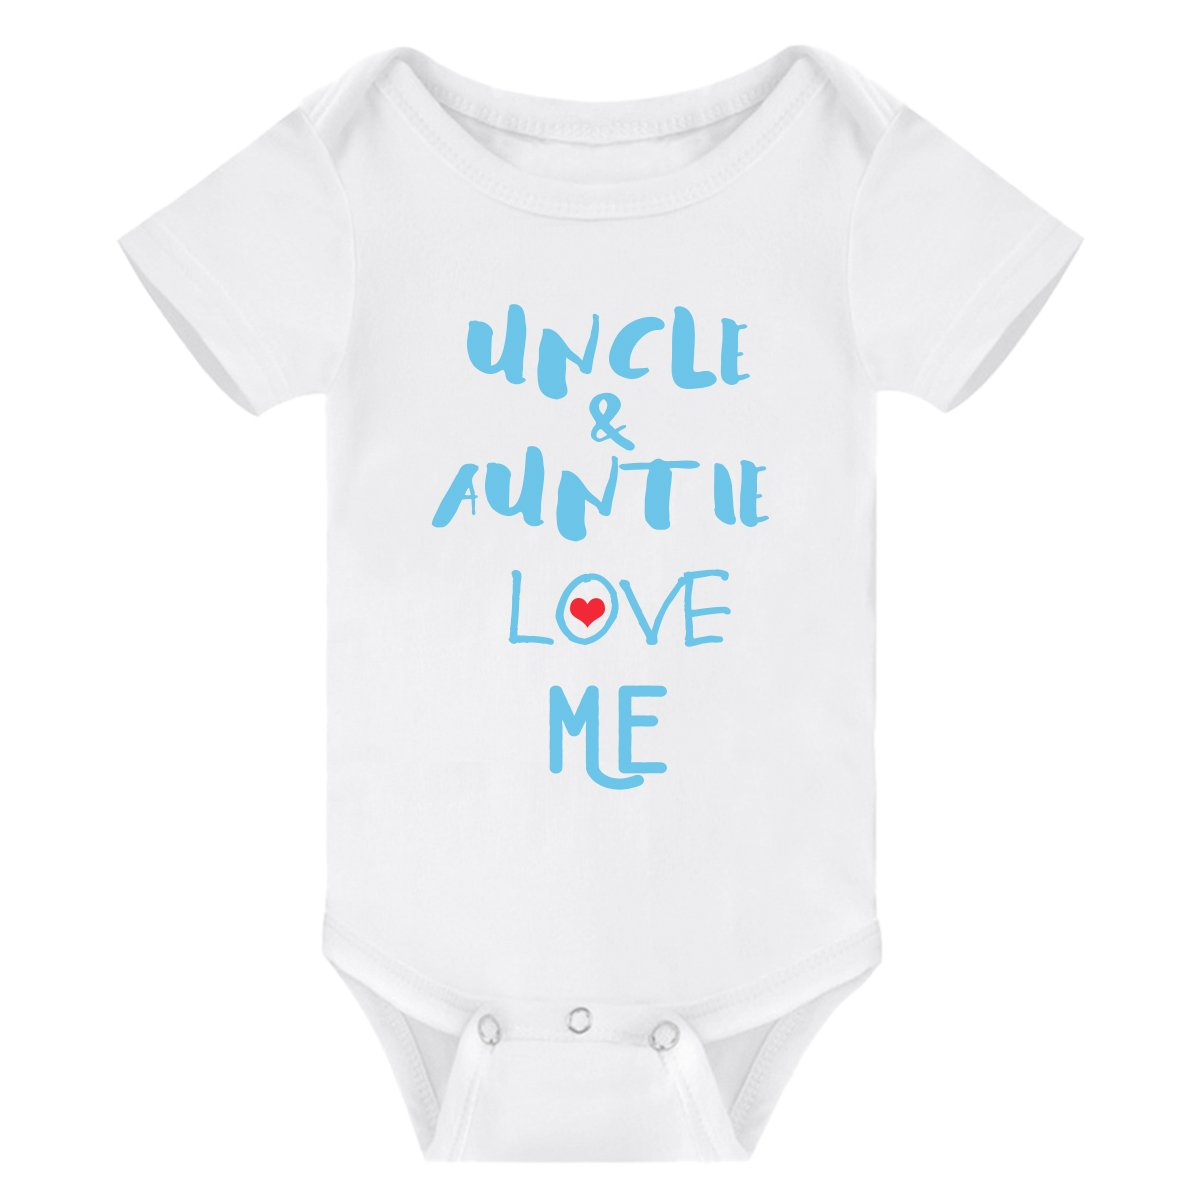 Winzik Newborn Baby Boys Girls Outfits Uncle Auntie Love Me Letters Print Baby Onesie Romper Jumpsuit T-Shirt (0-3 Months, White Blue)